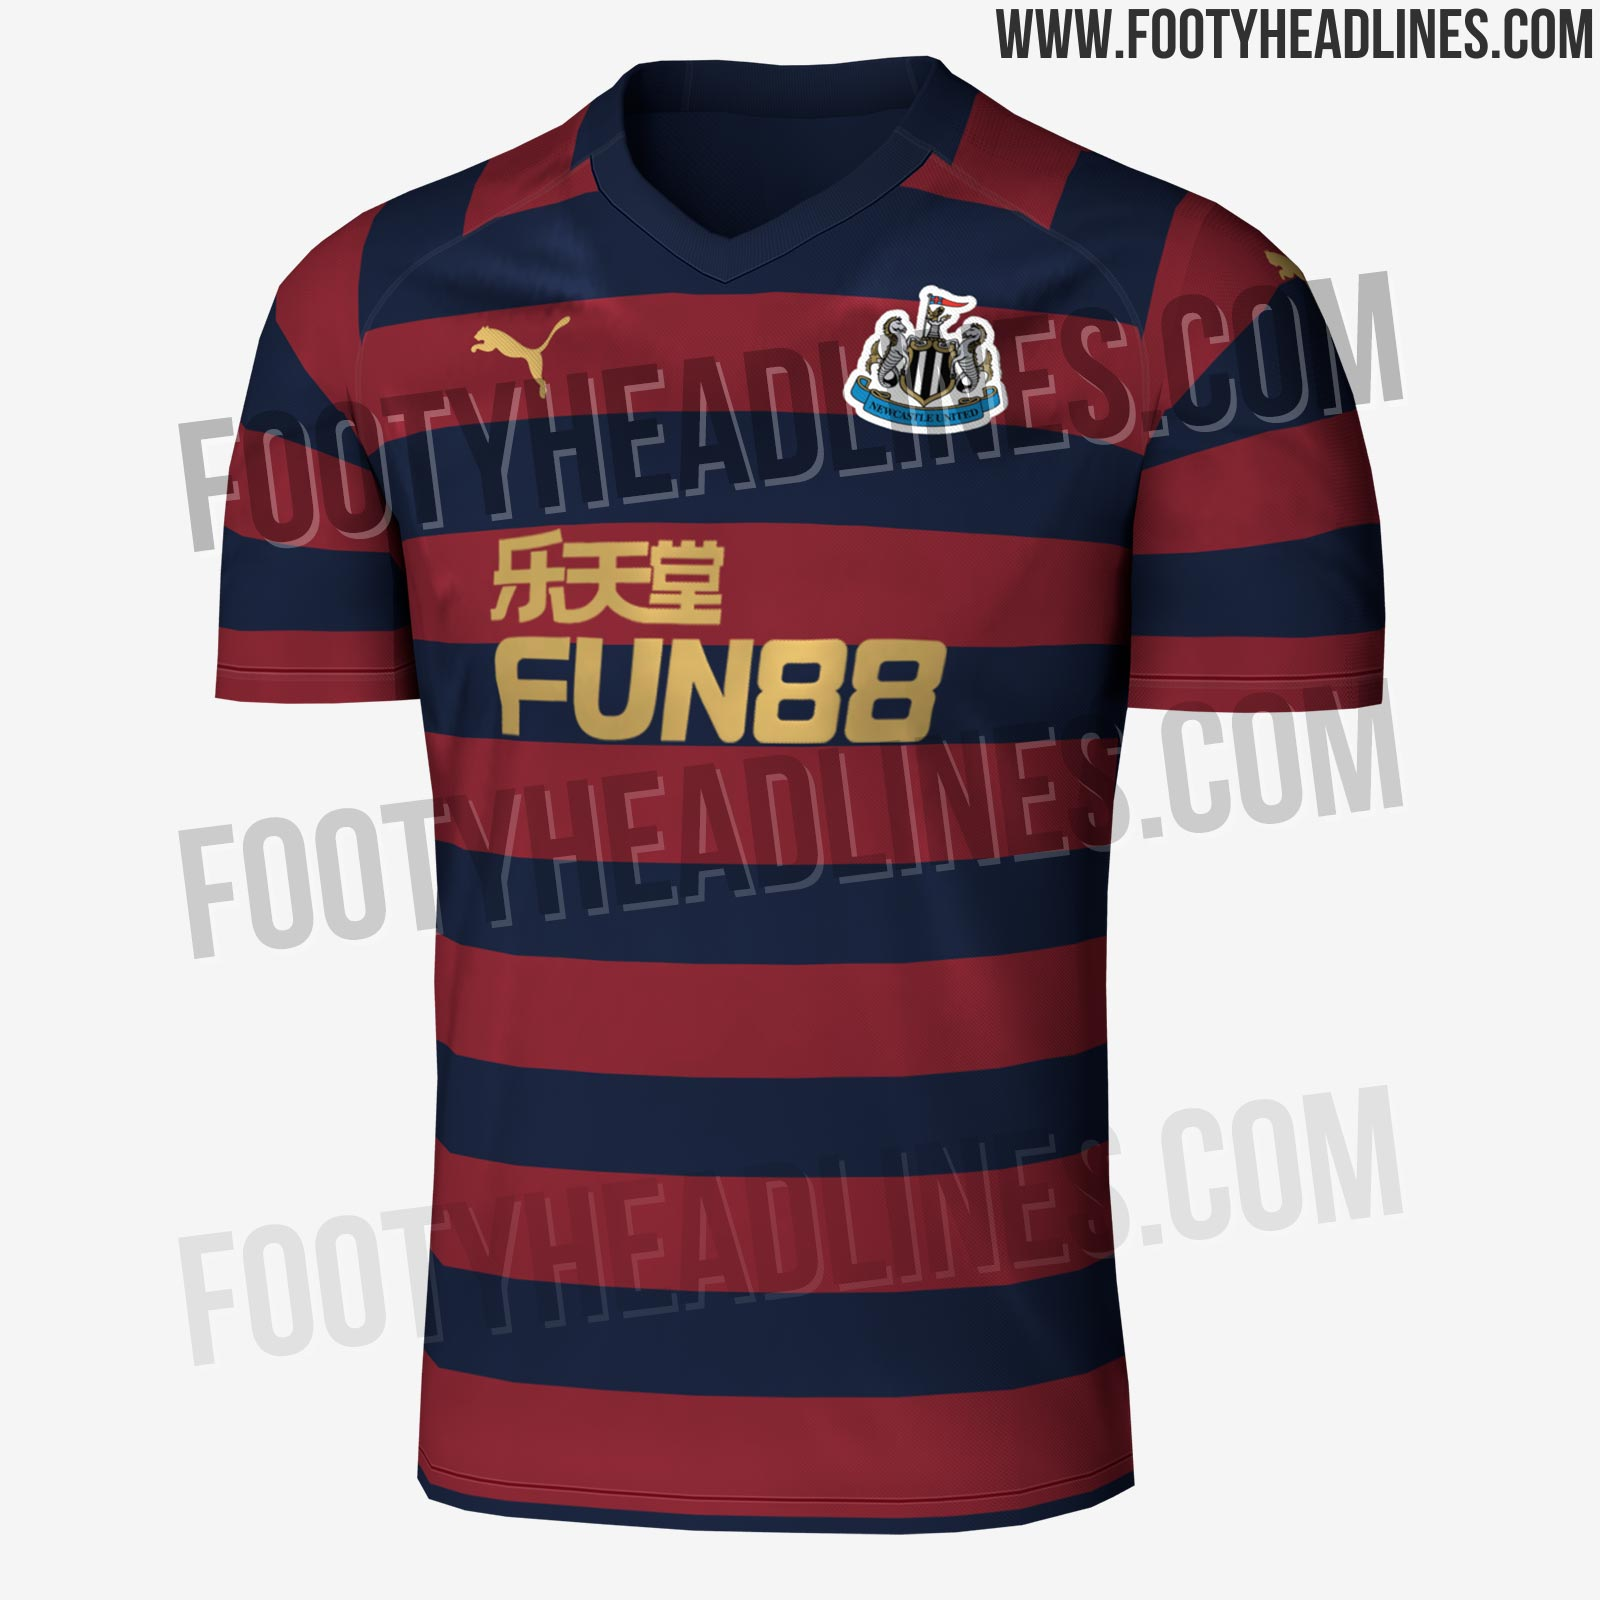 newcastle-18-19-away-kit-2.jpg